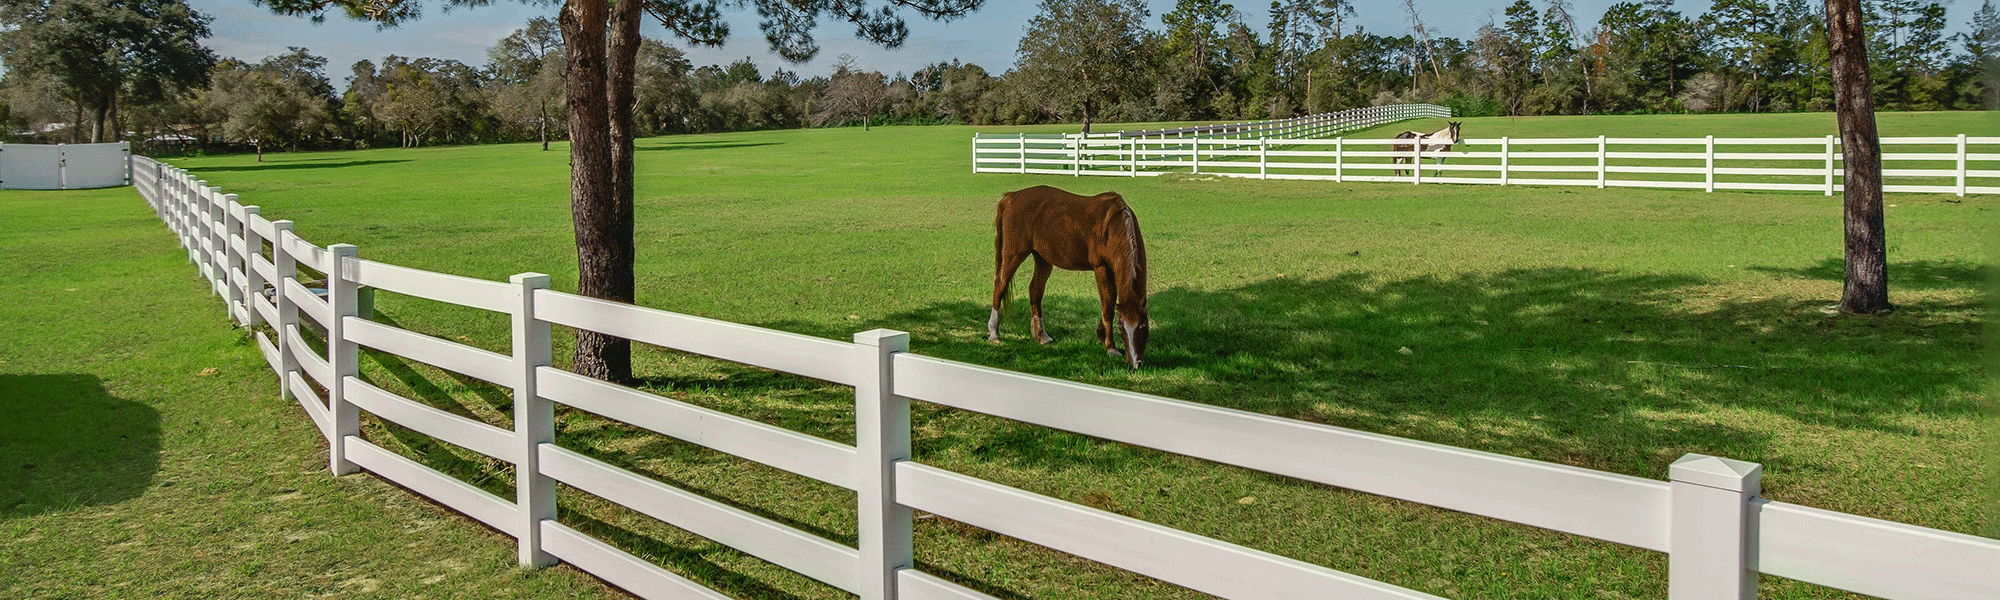 A horse grazing beside a white fence.